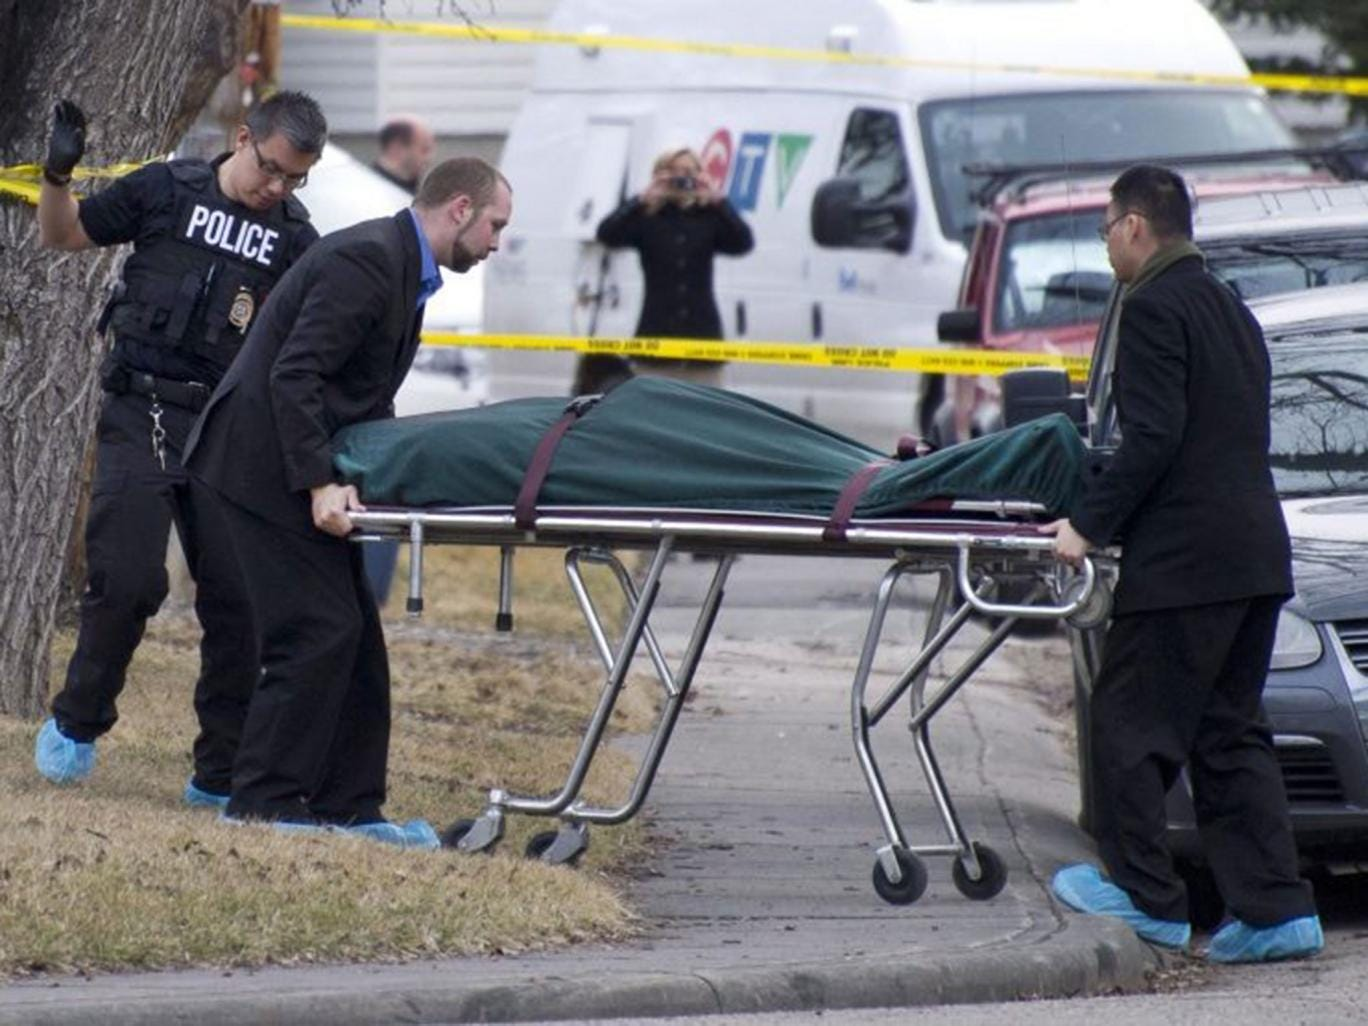 Police remove a body from the scene the stabbing in Calgary